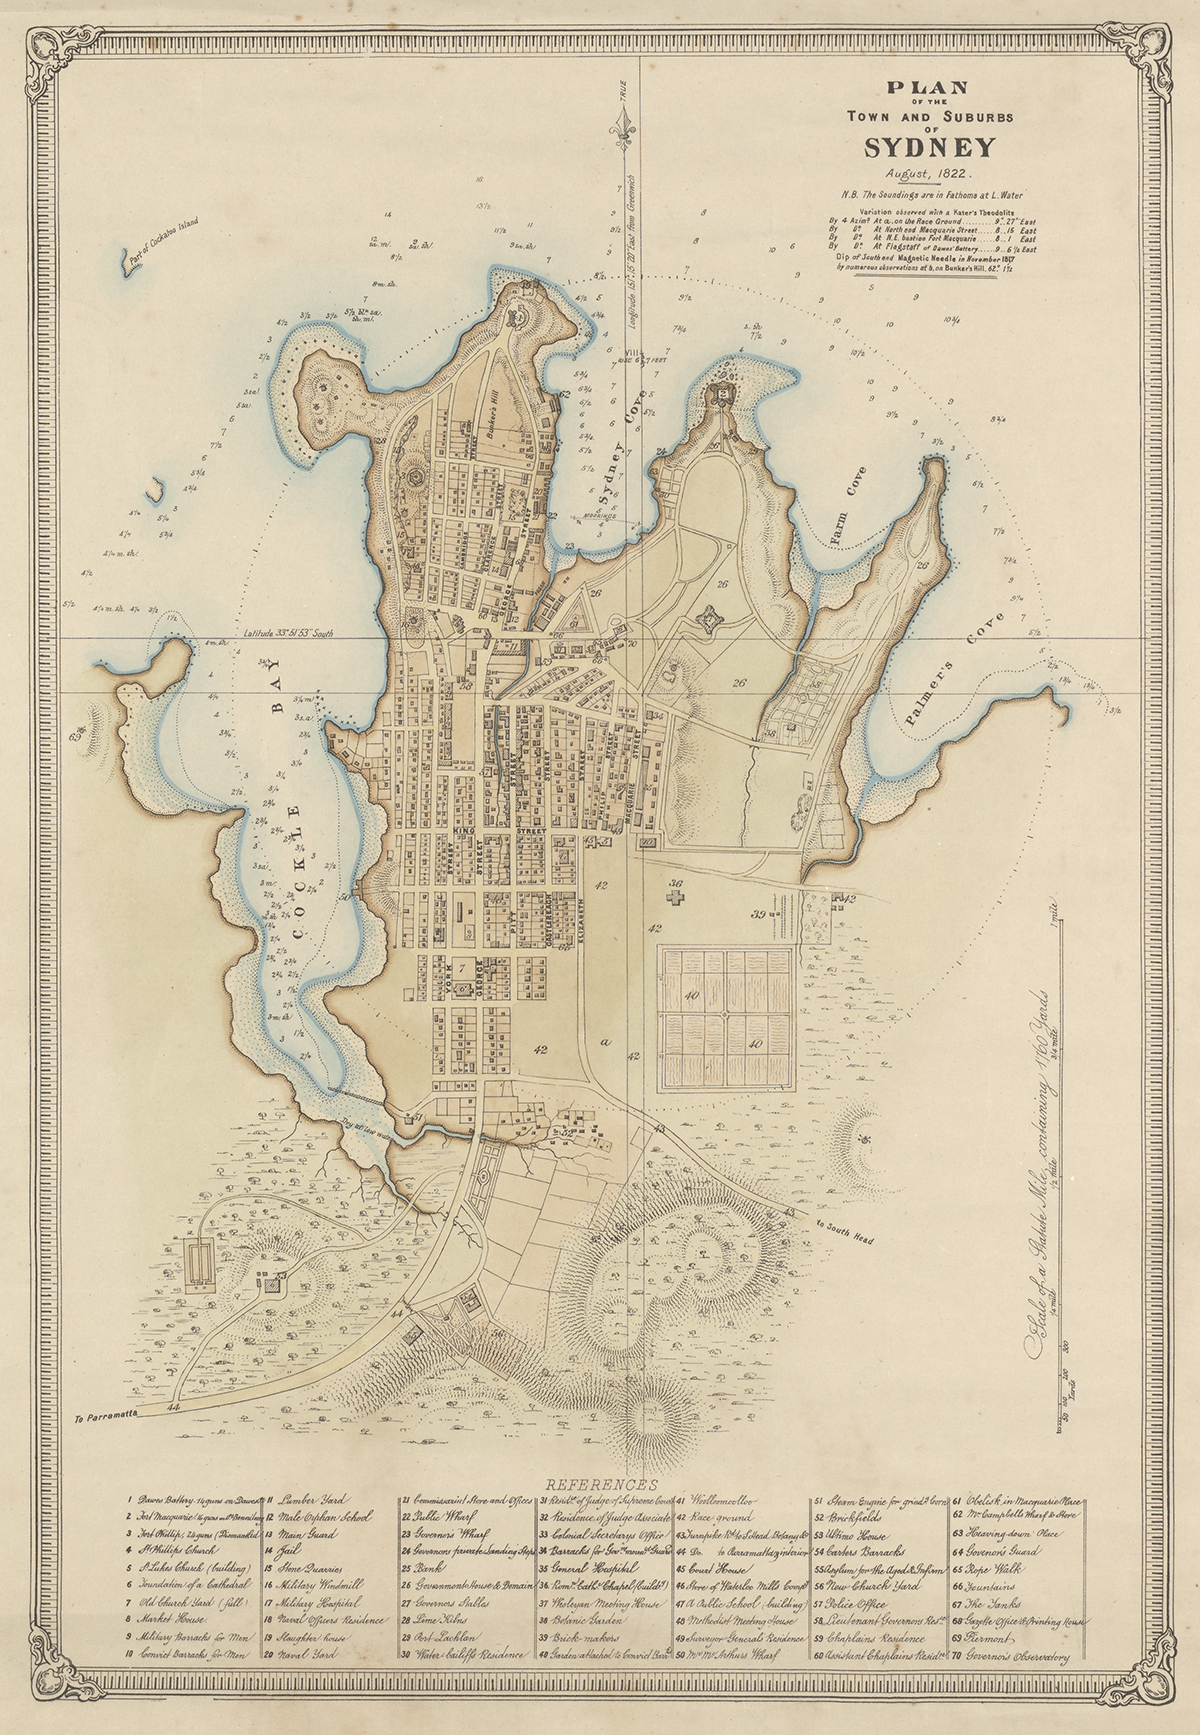 Plan of the town and suburbs of Sydney, August 1822